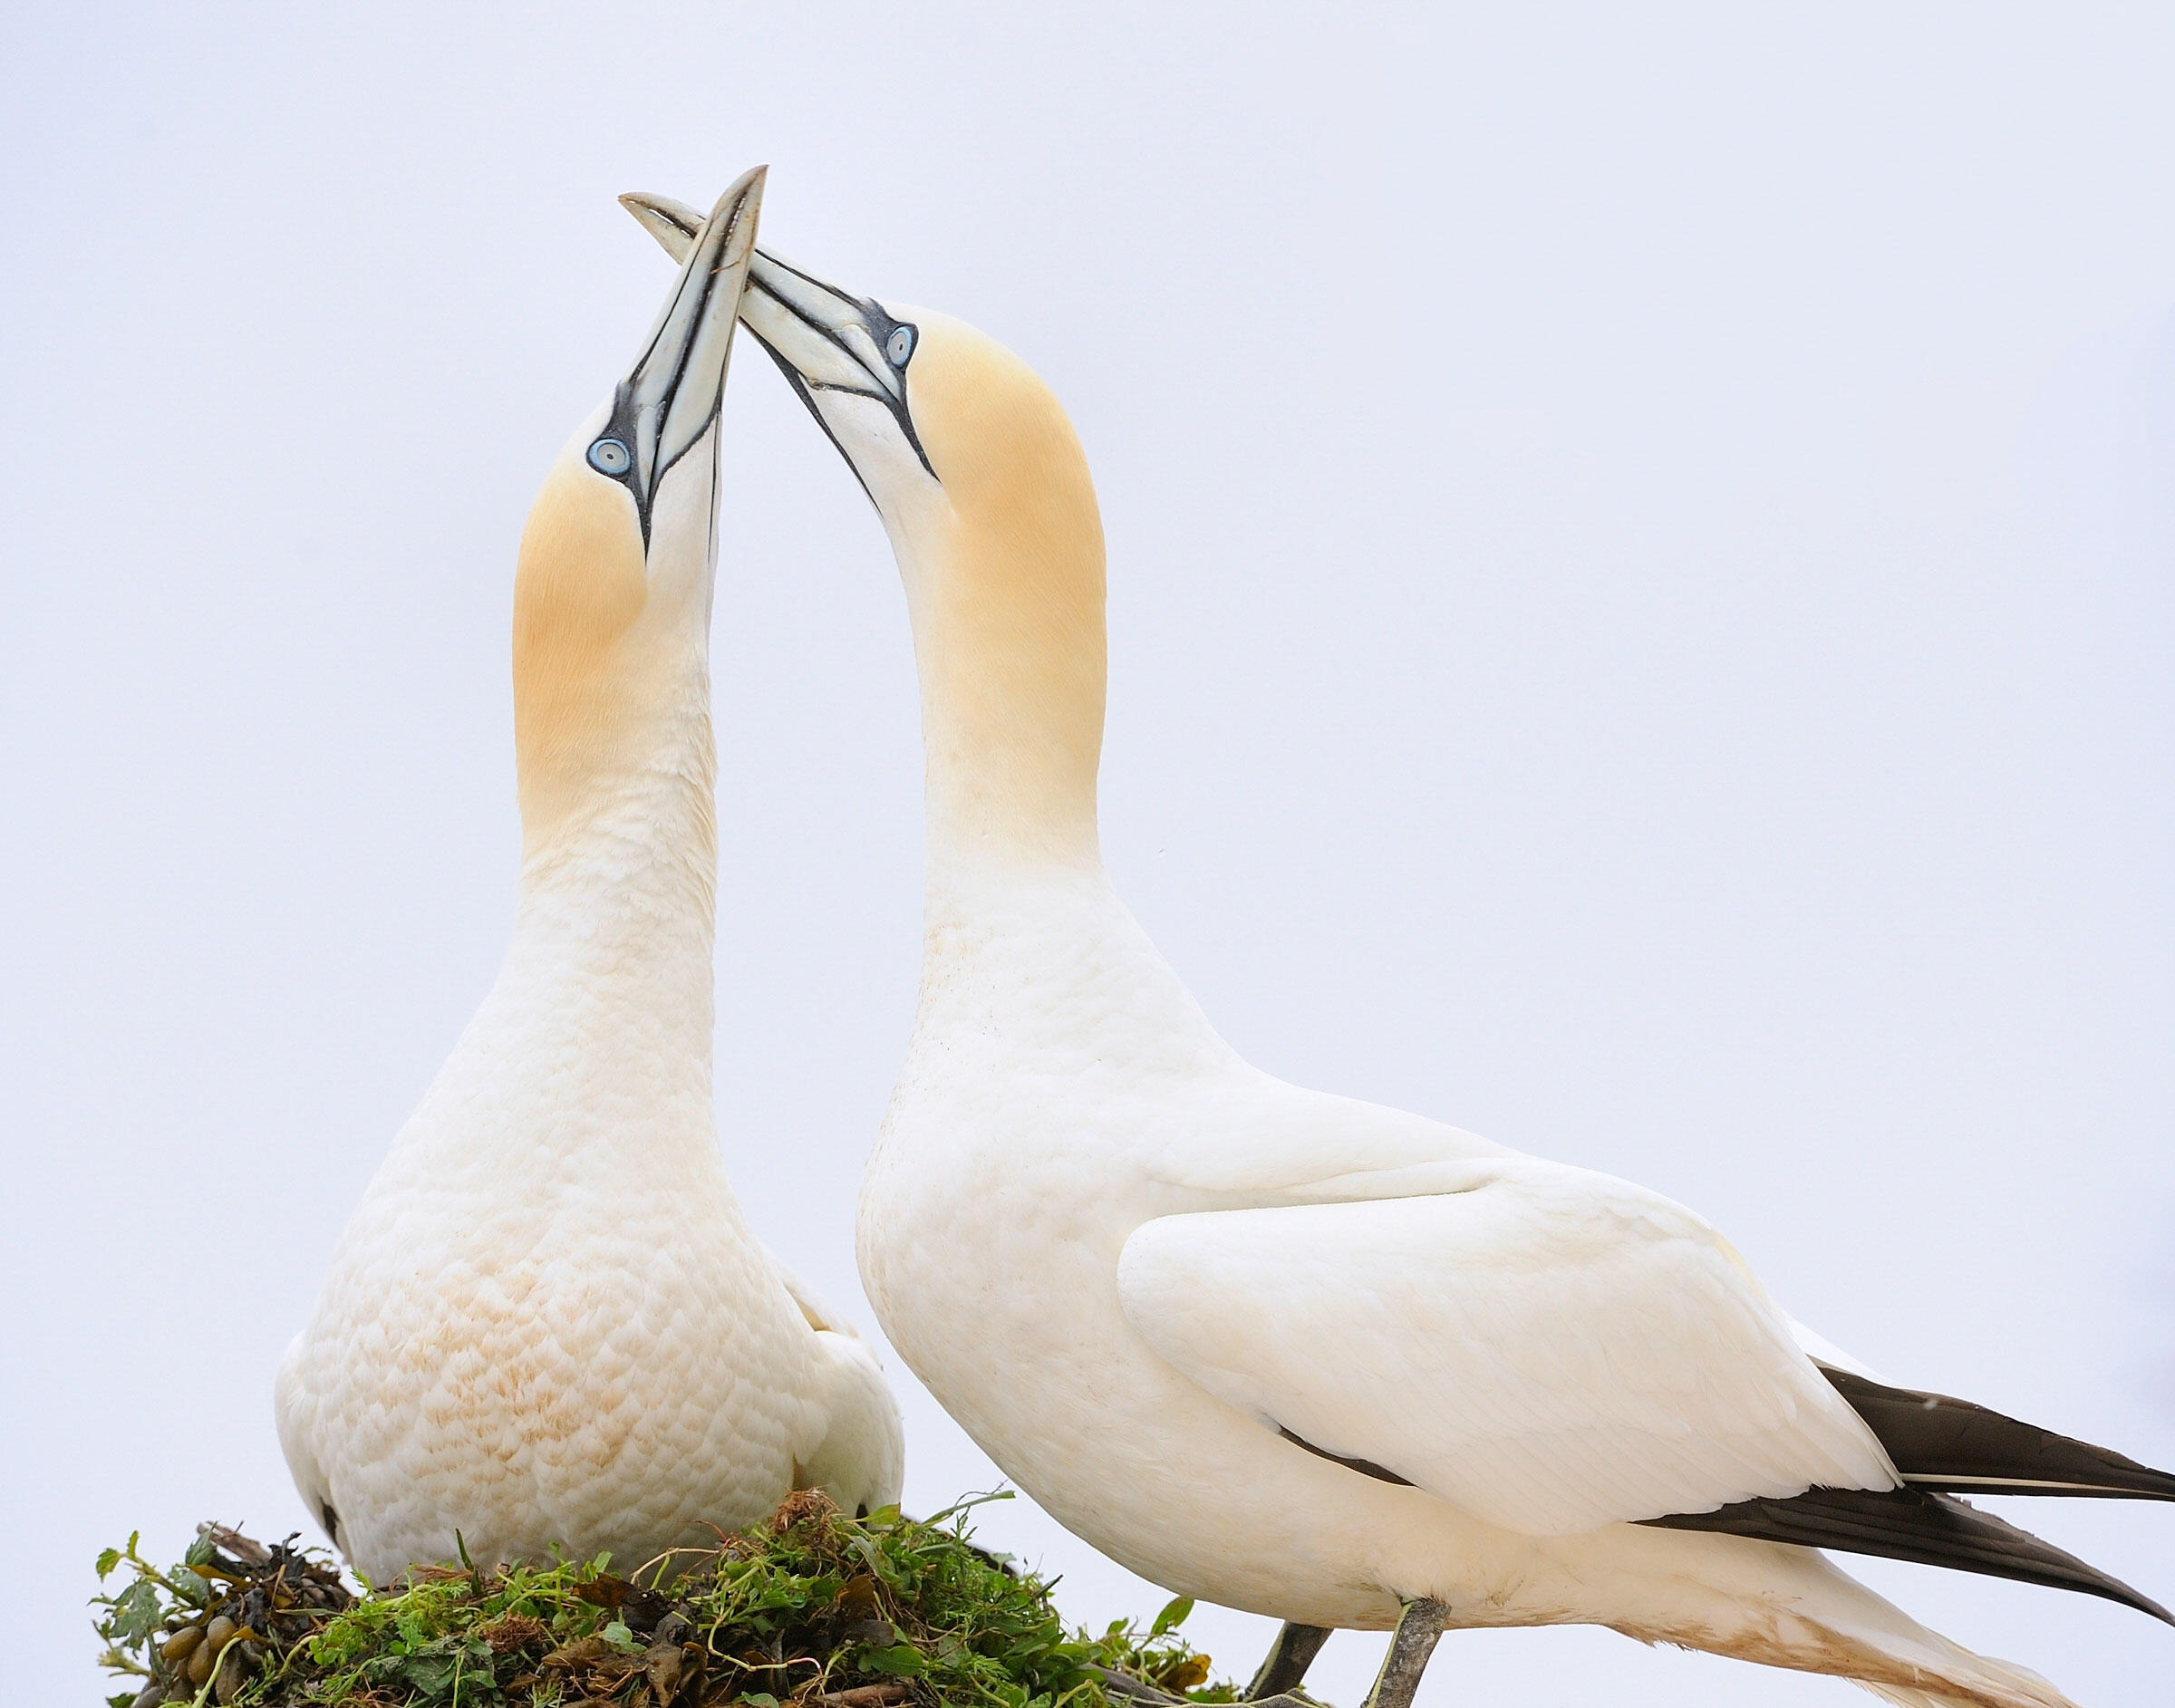 Northern Gannets. Mike Anderson/Audubon Photography Awards